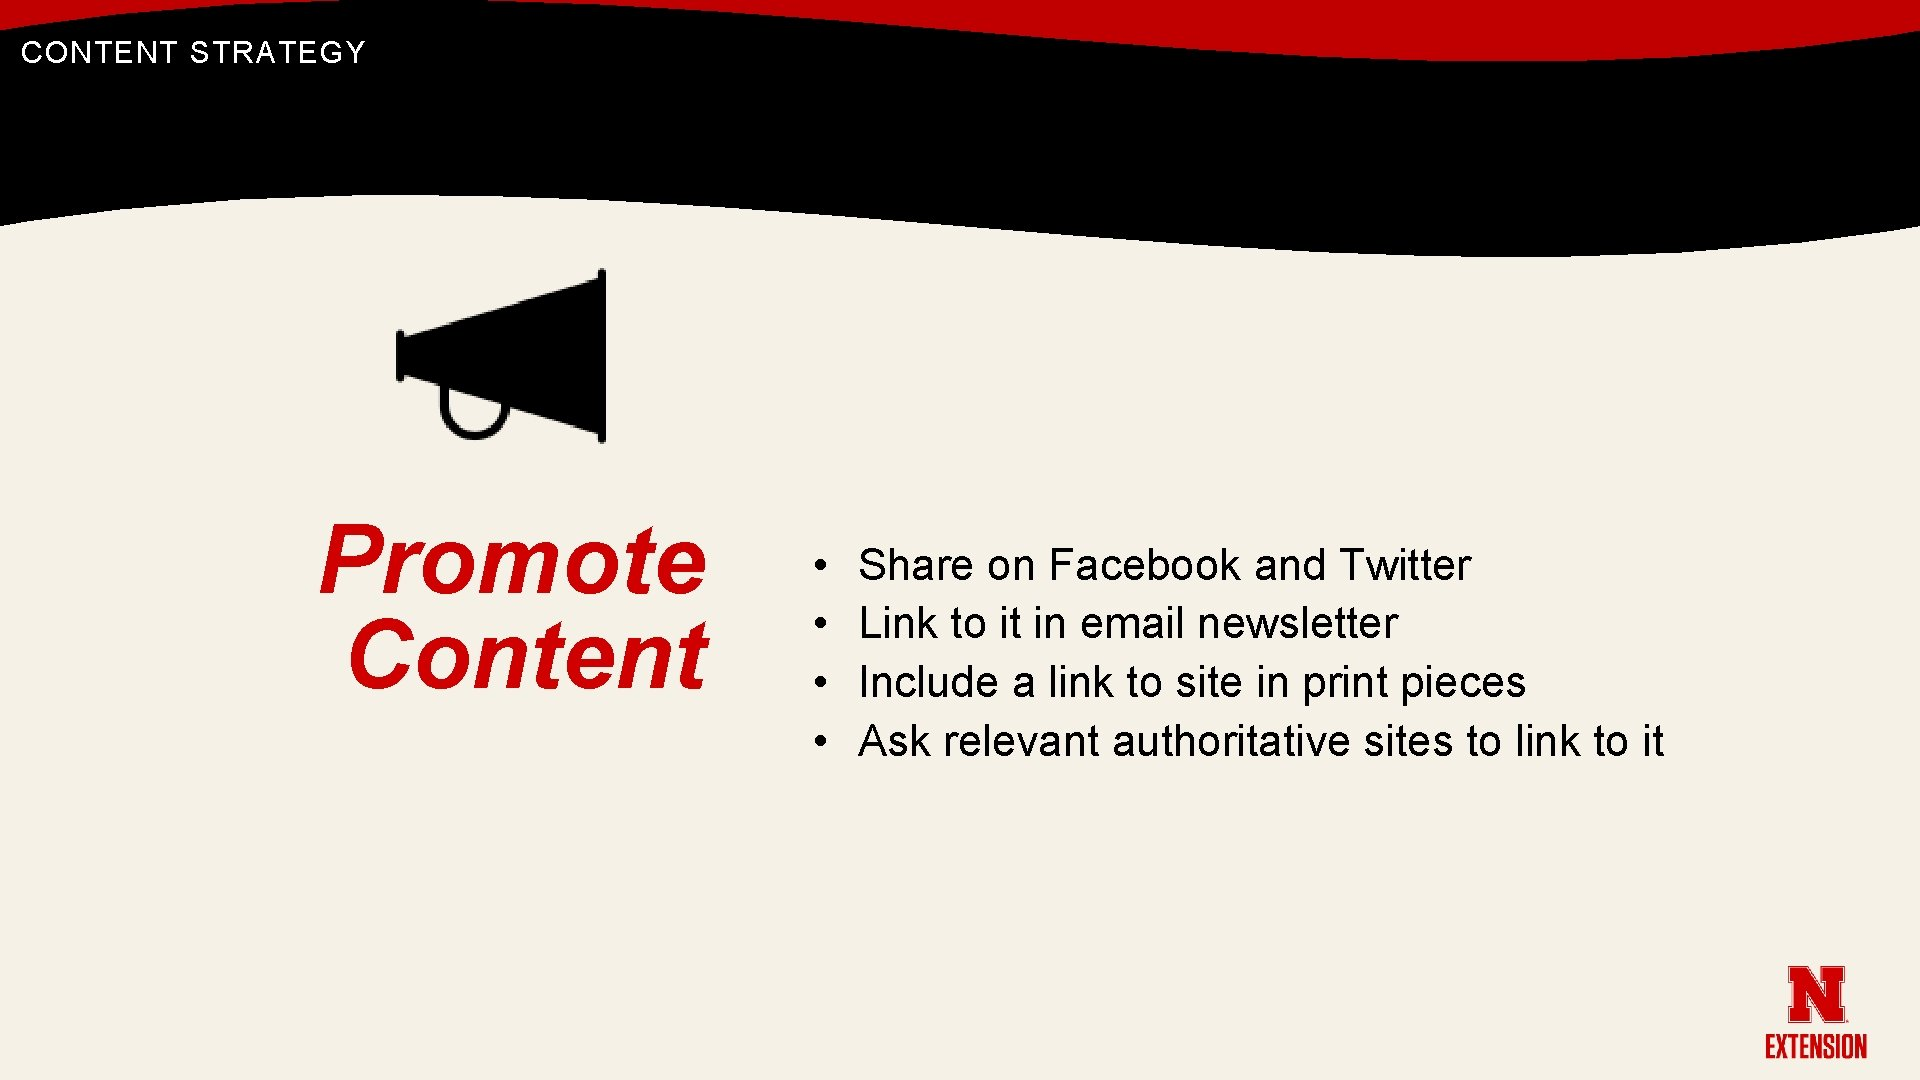 CONTENT STRATEGY Promote Content • • Share on Facebook and Twitter Link to it